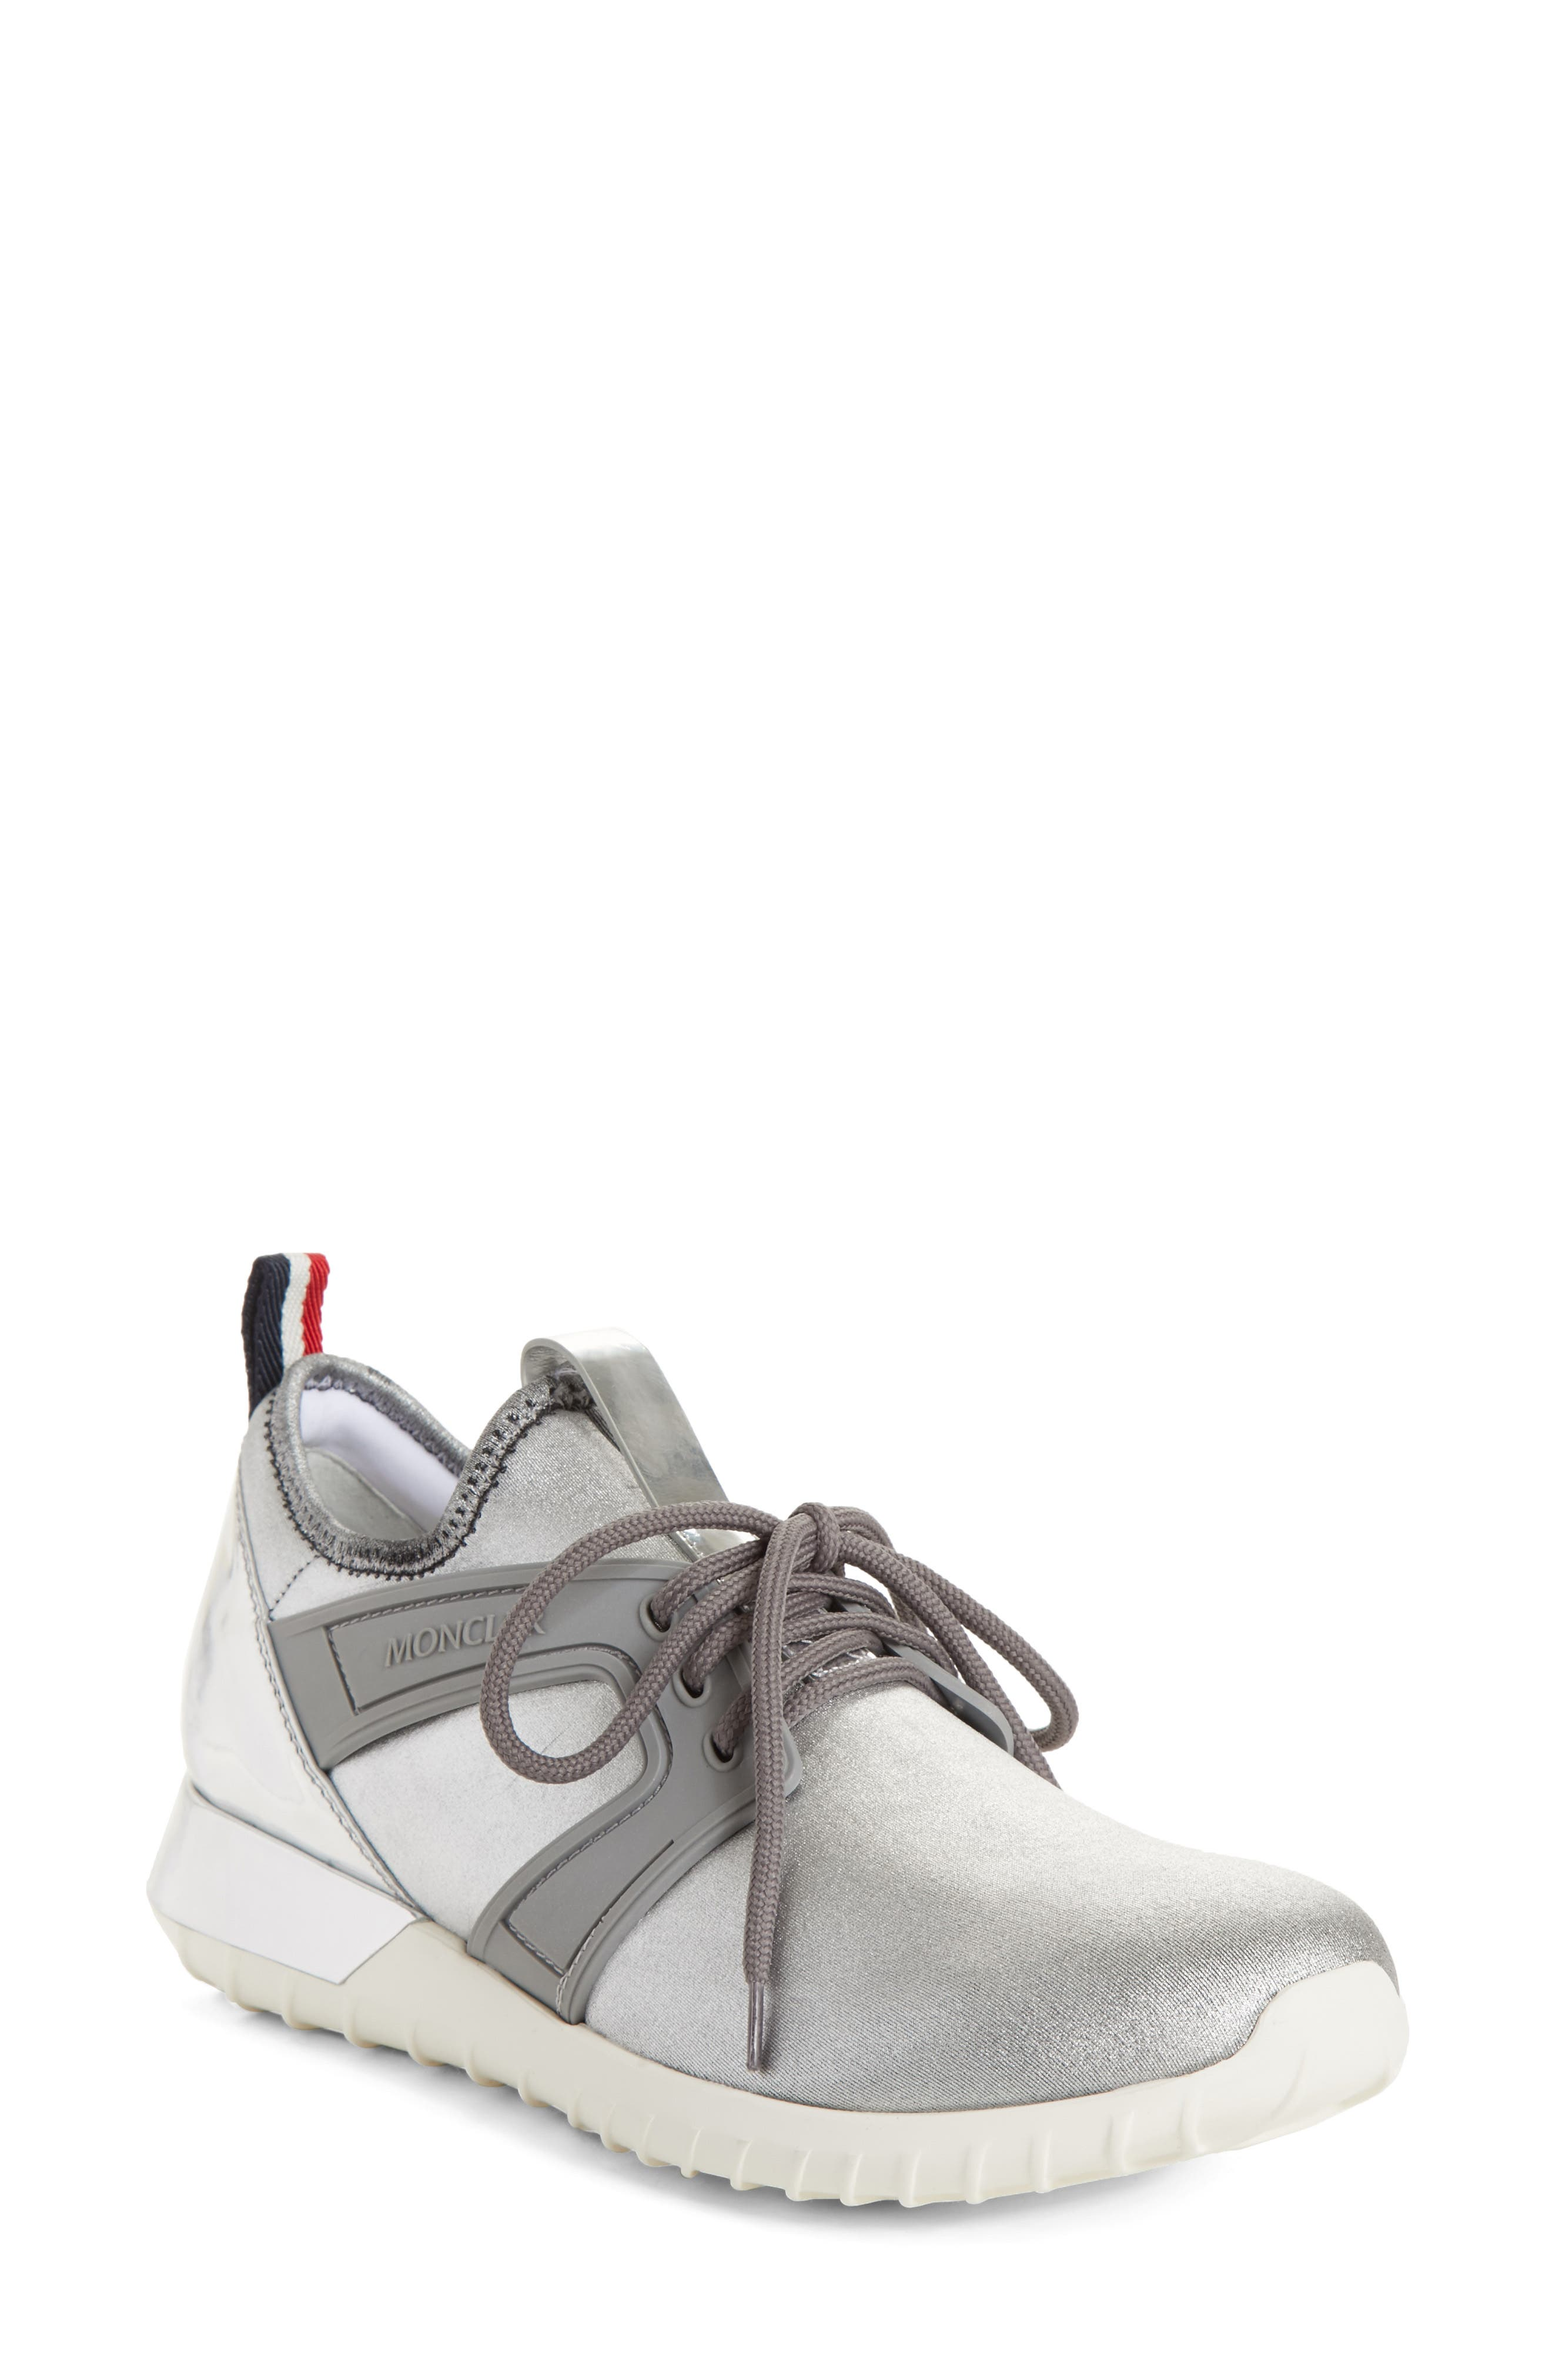 Meline Runner Sneaker,                             Main thumbnail 1, color,                             044